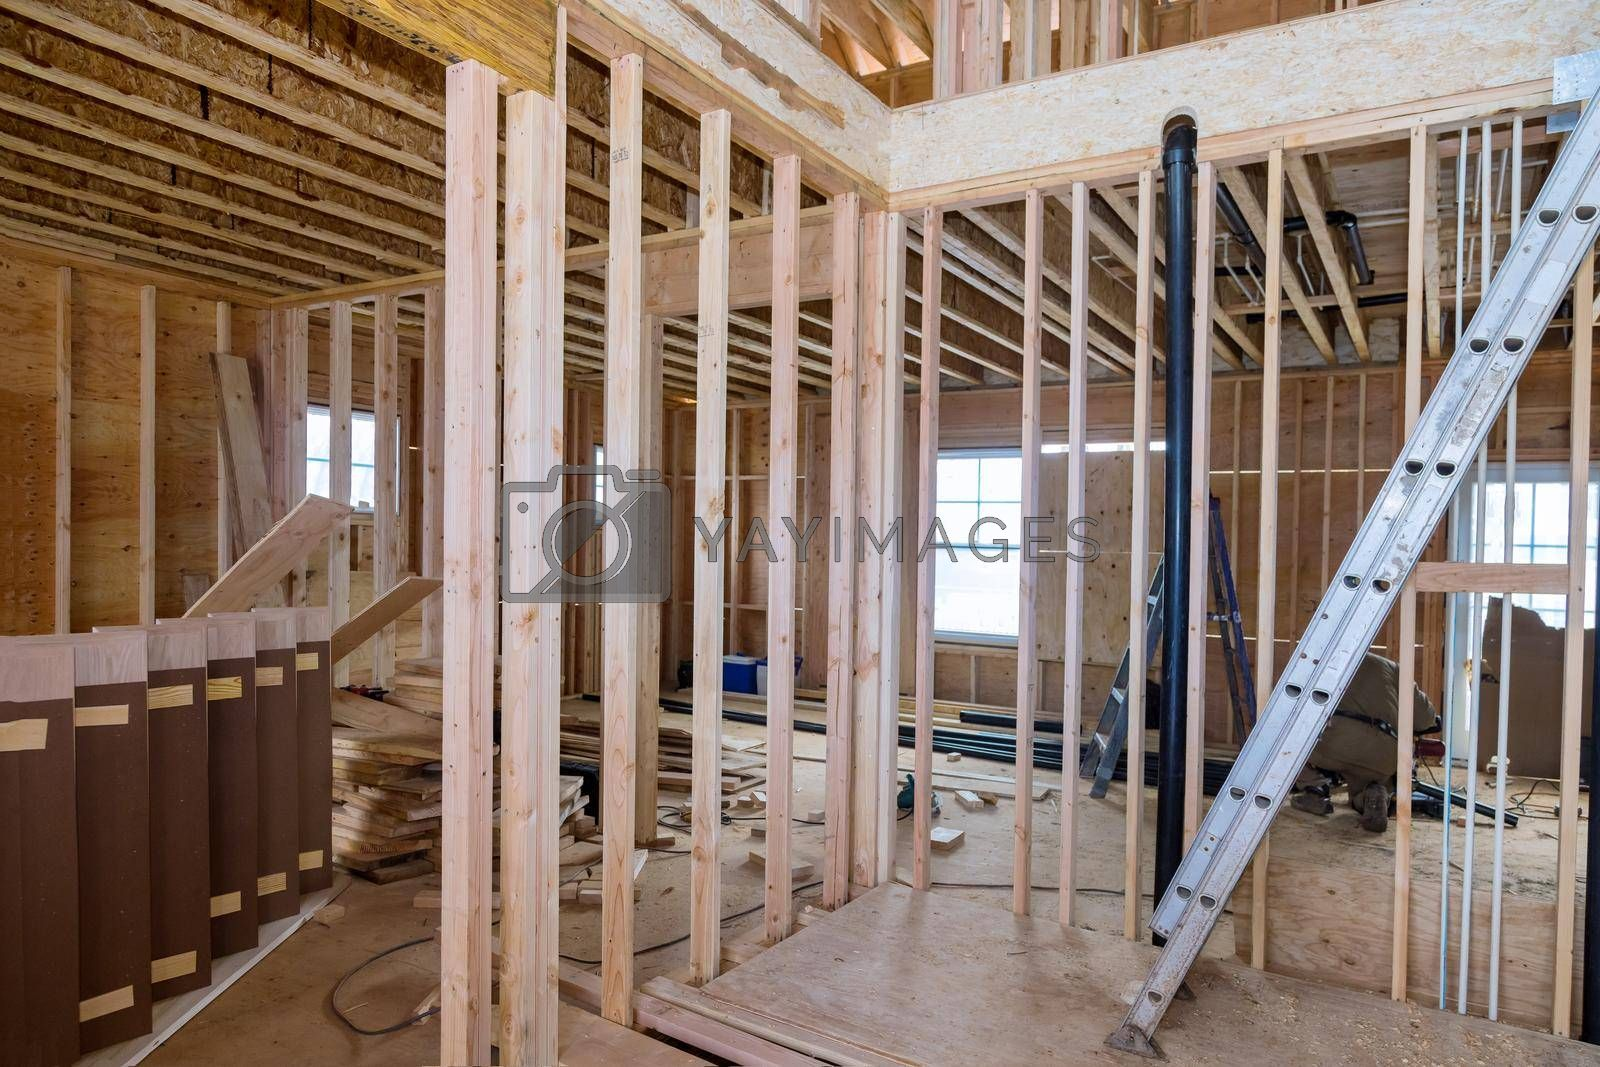 Beams under construction framing of a new unfinished wooden house at a construction site